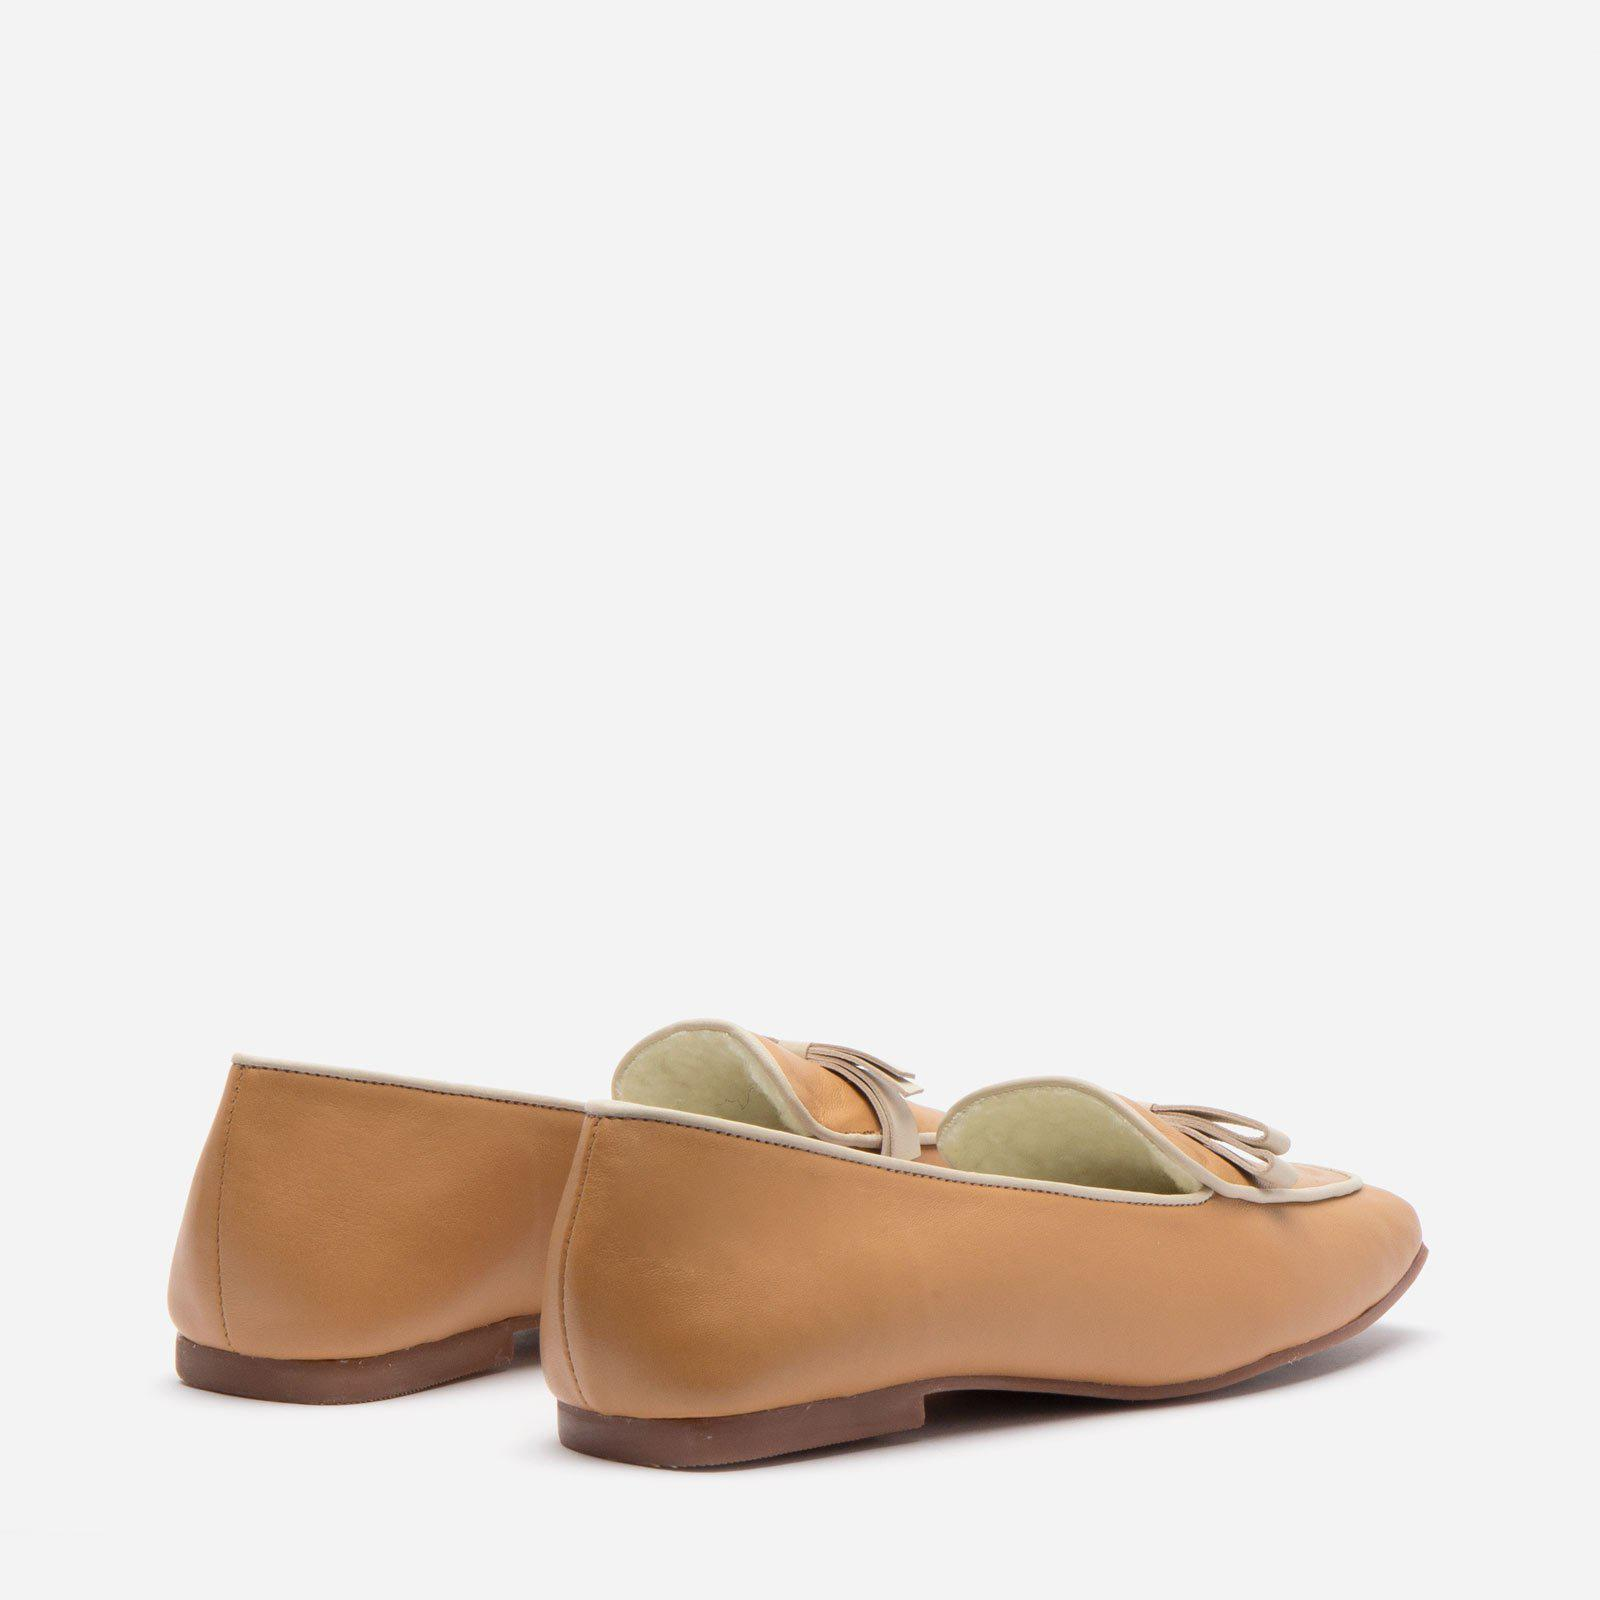 Suzanne Cozy Loafer Nappa Faux Shearling Camel 3